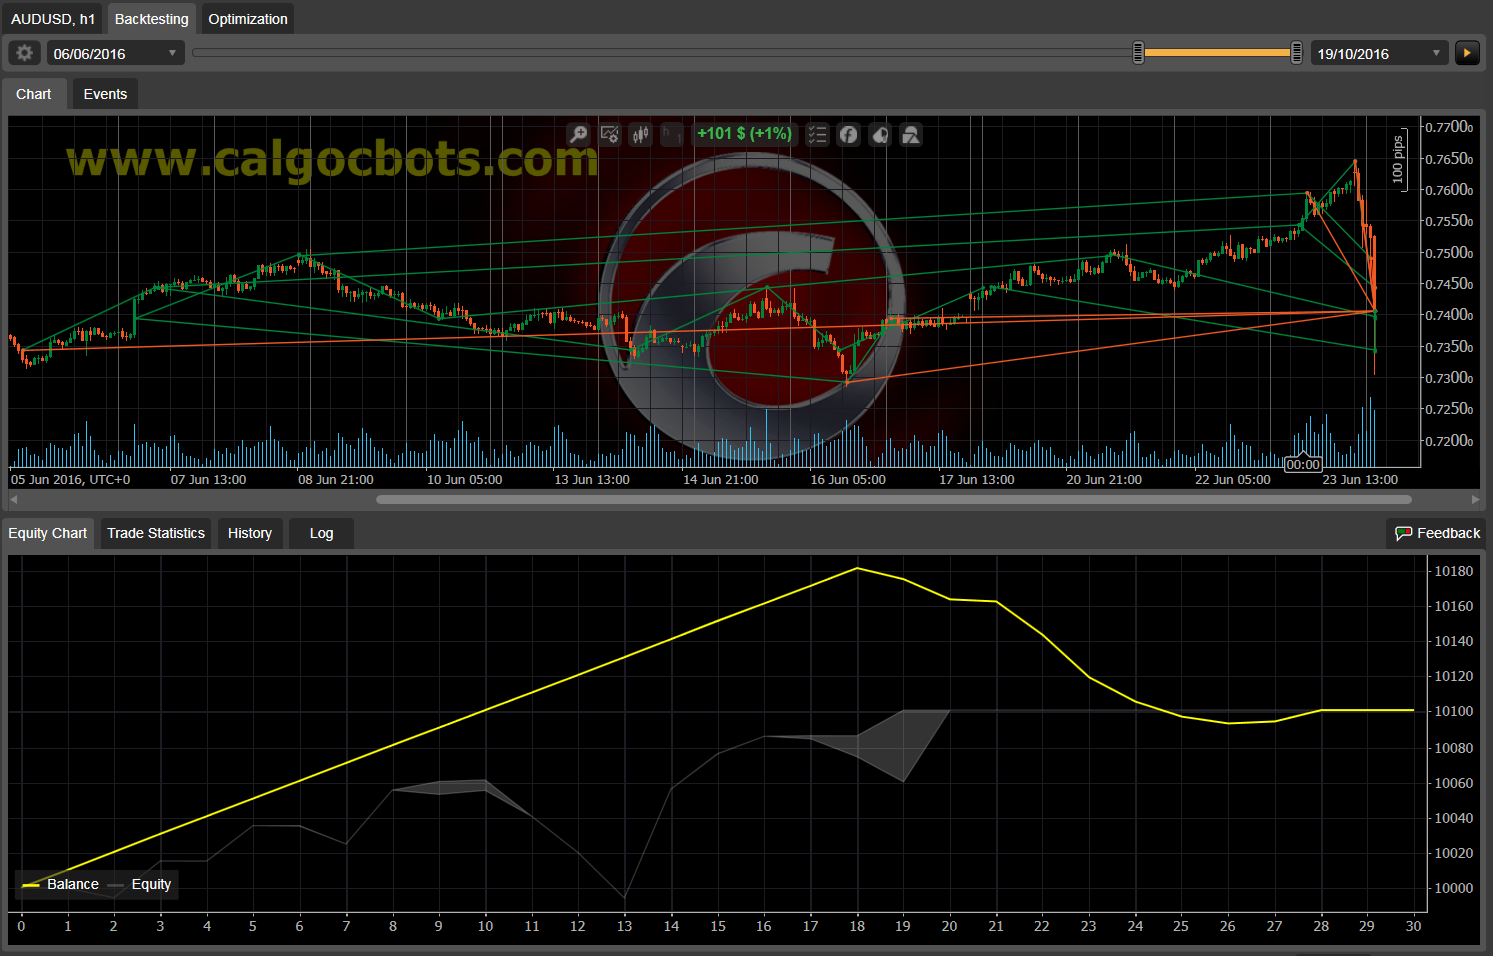 Dual Grid Hedge AUD USD 1h cAlgo cBots cTrader 1k 100 50 100 - 11